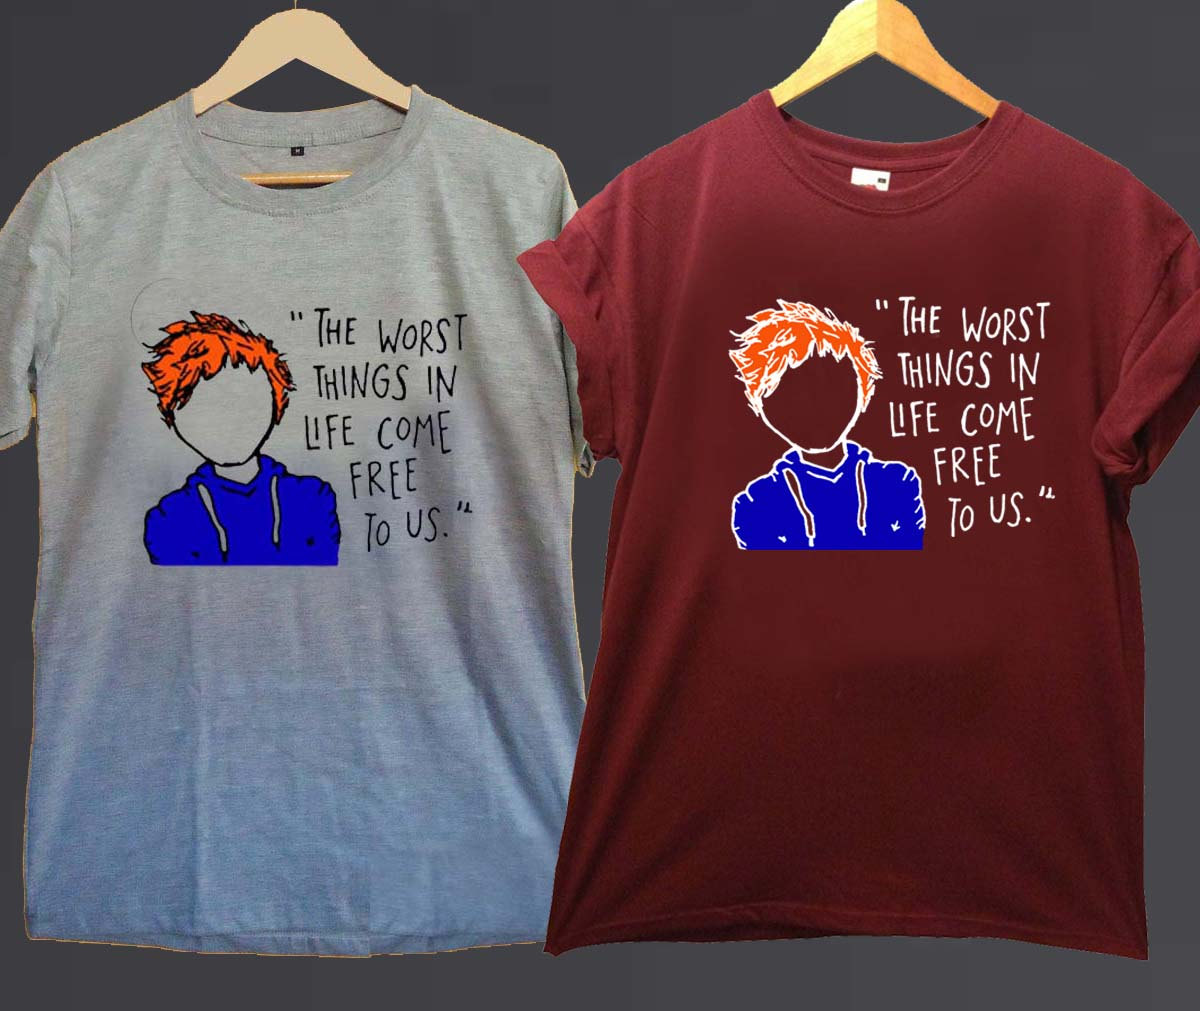 ed sheeran for t shirt mens and girls s xxl. Black Bedroom Furniture Sets. Home Design Ideas